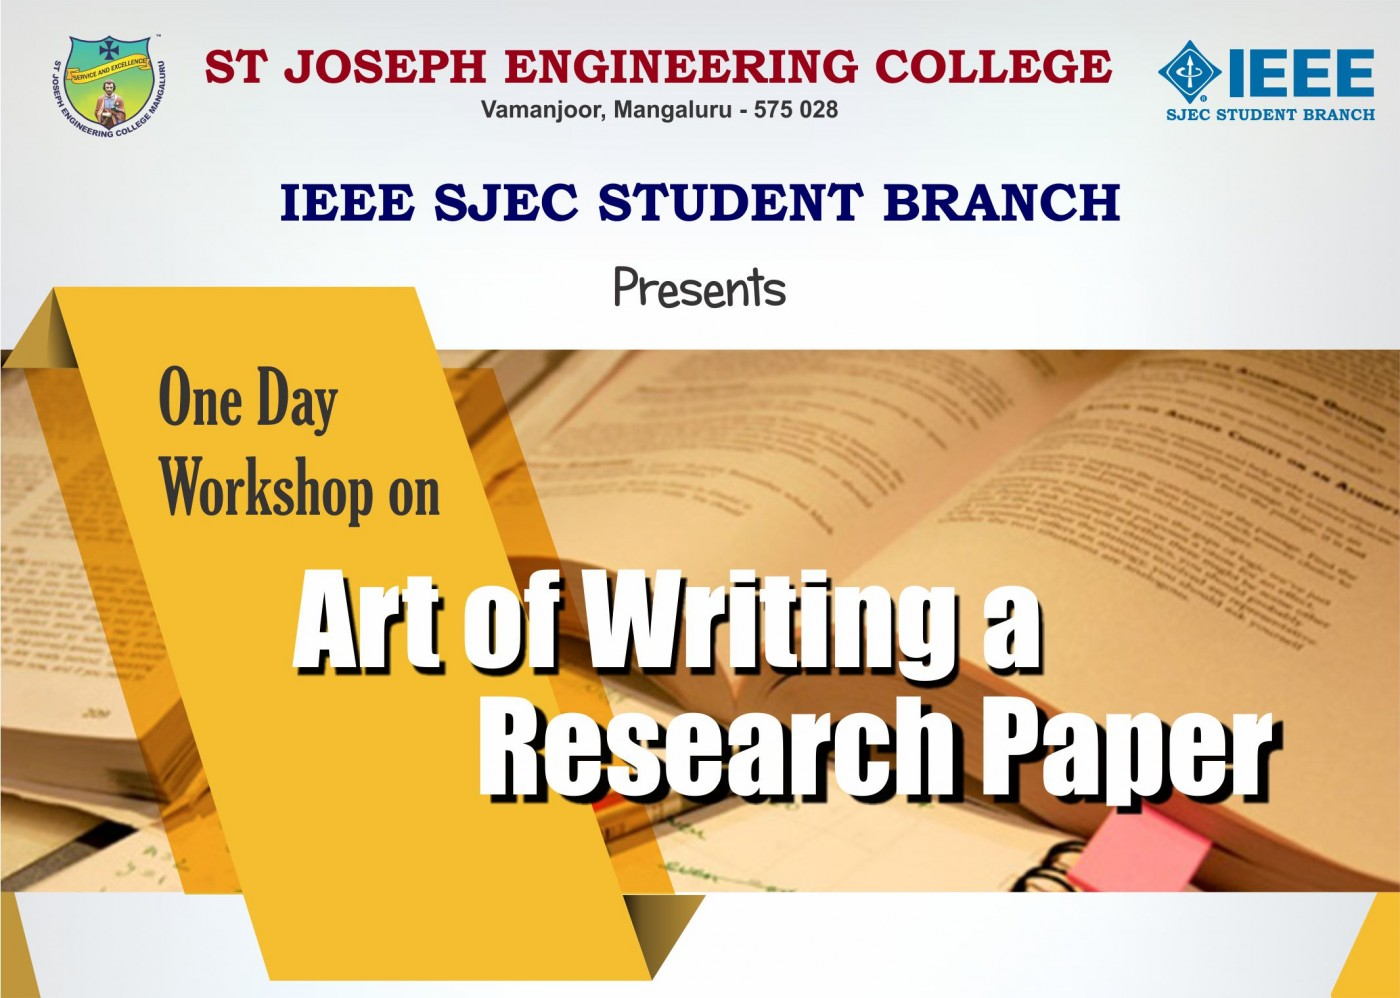 005 Research Paper About Writing Workshop Rare Skills Pdf Report Process Creative 1400